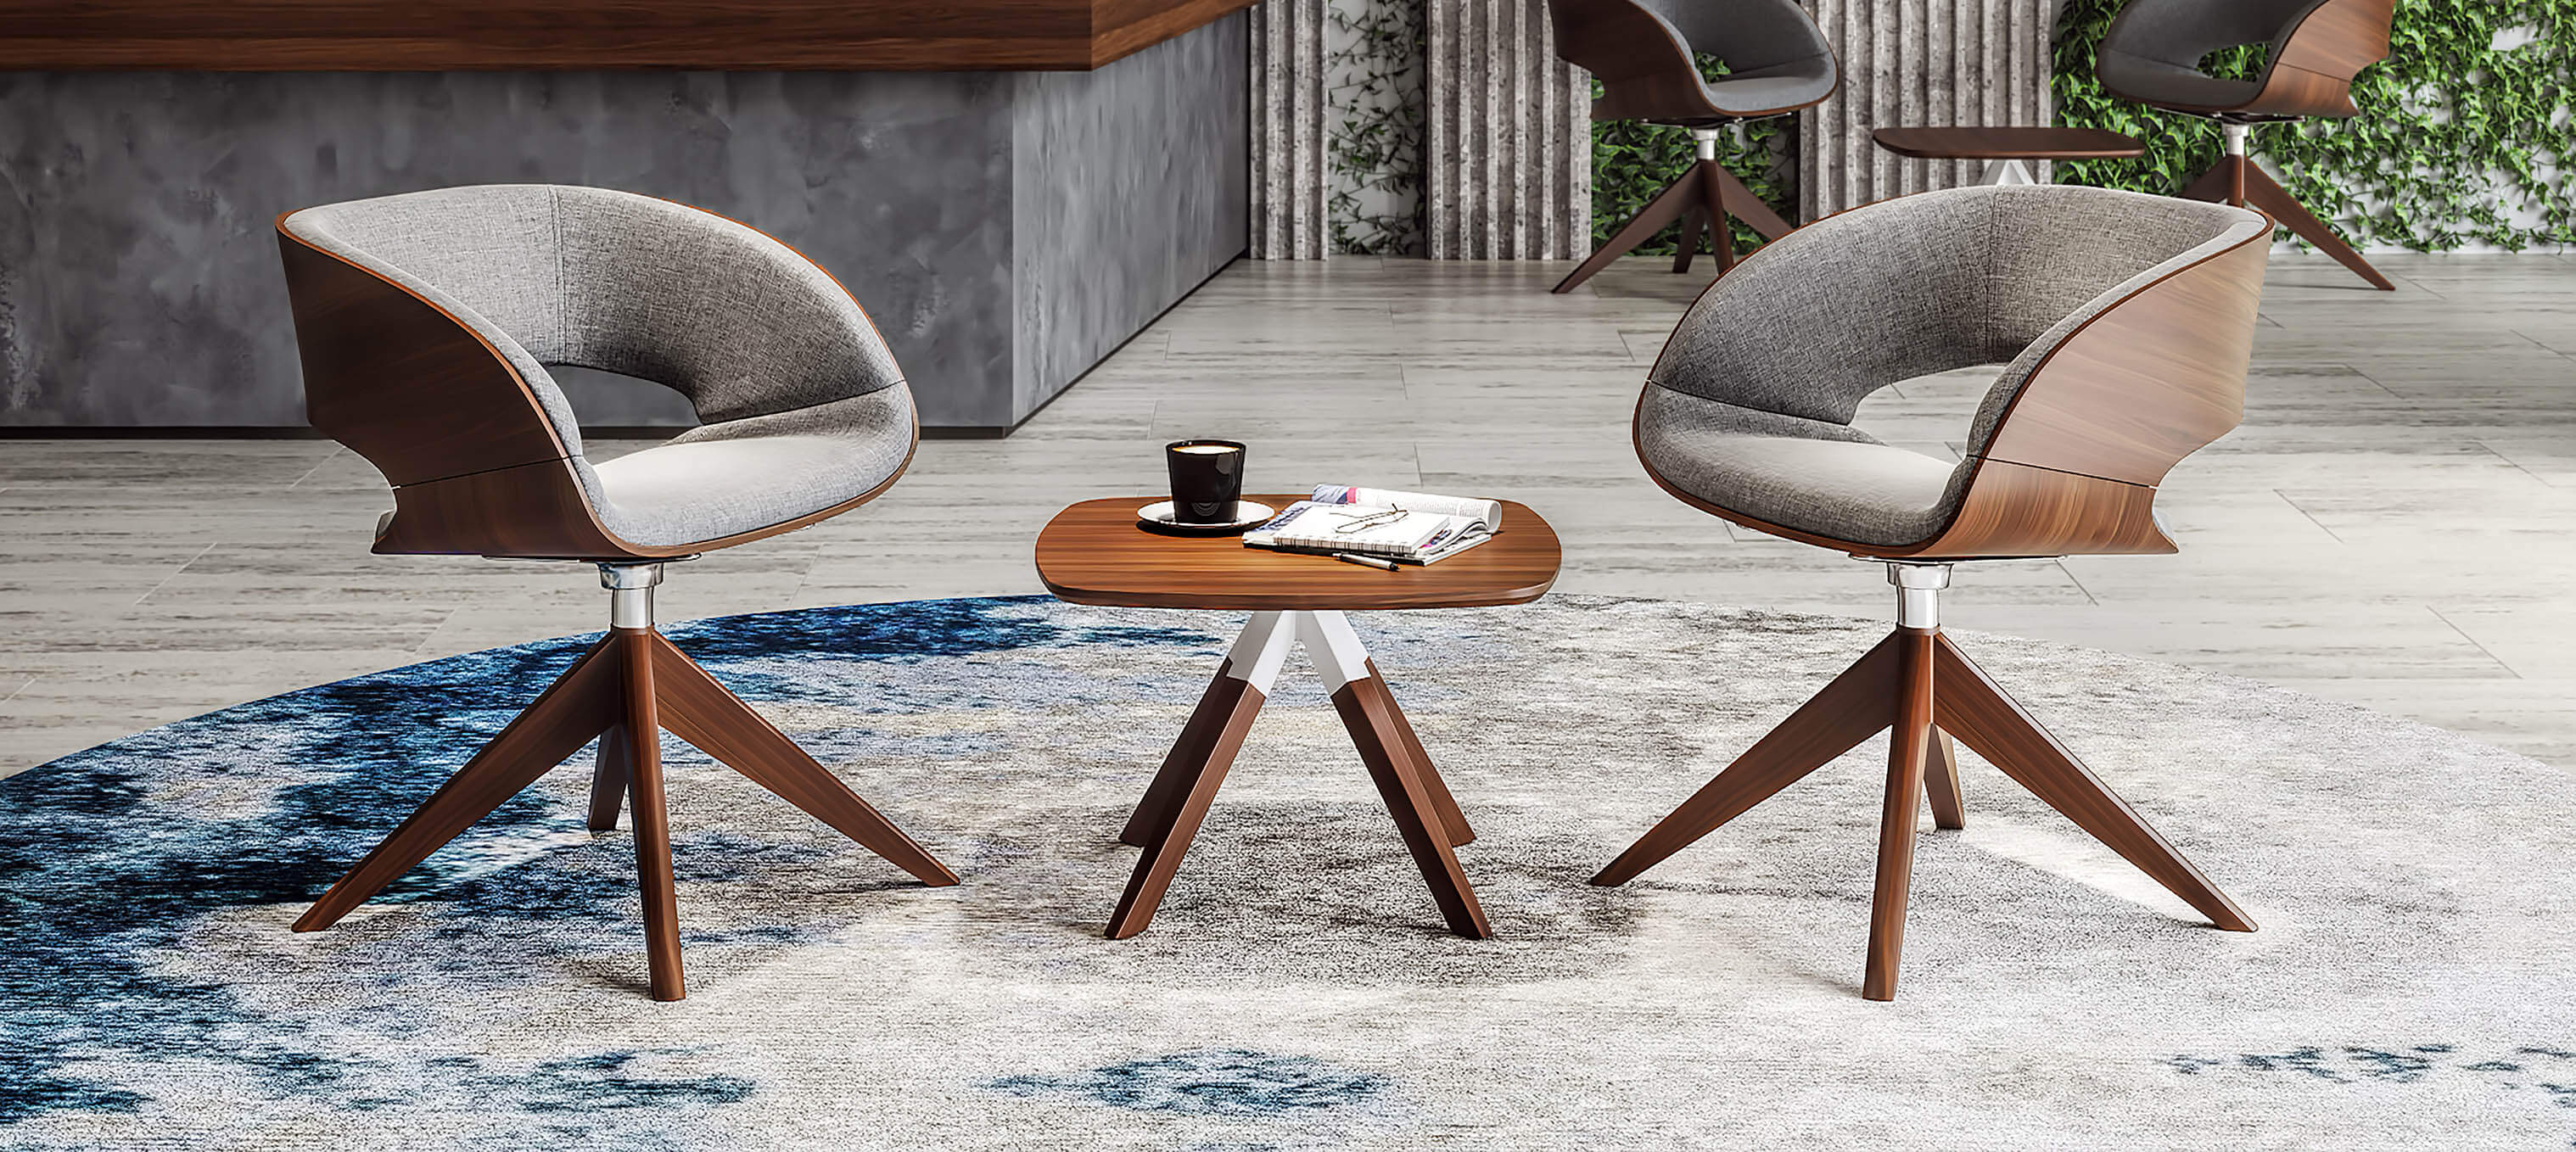 A-Cross Coffee Table & Junea Soft seating